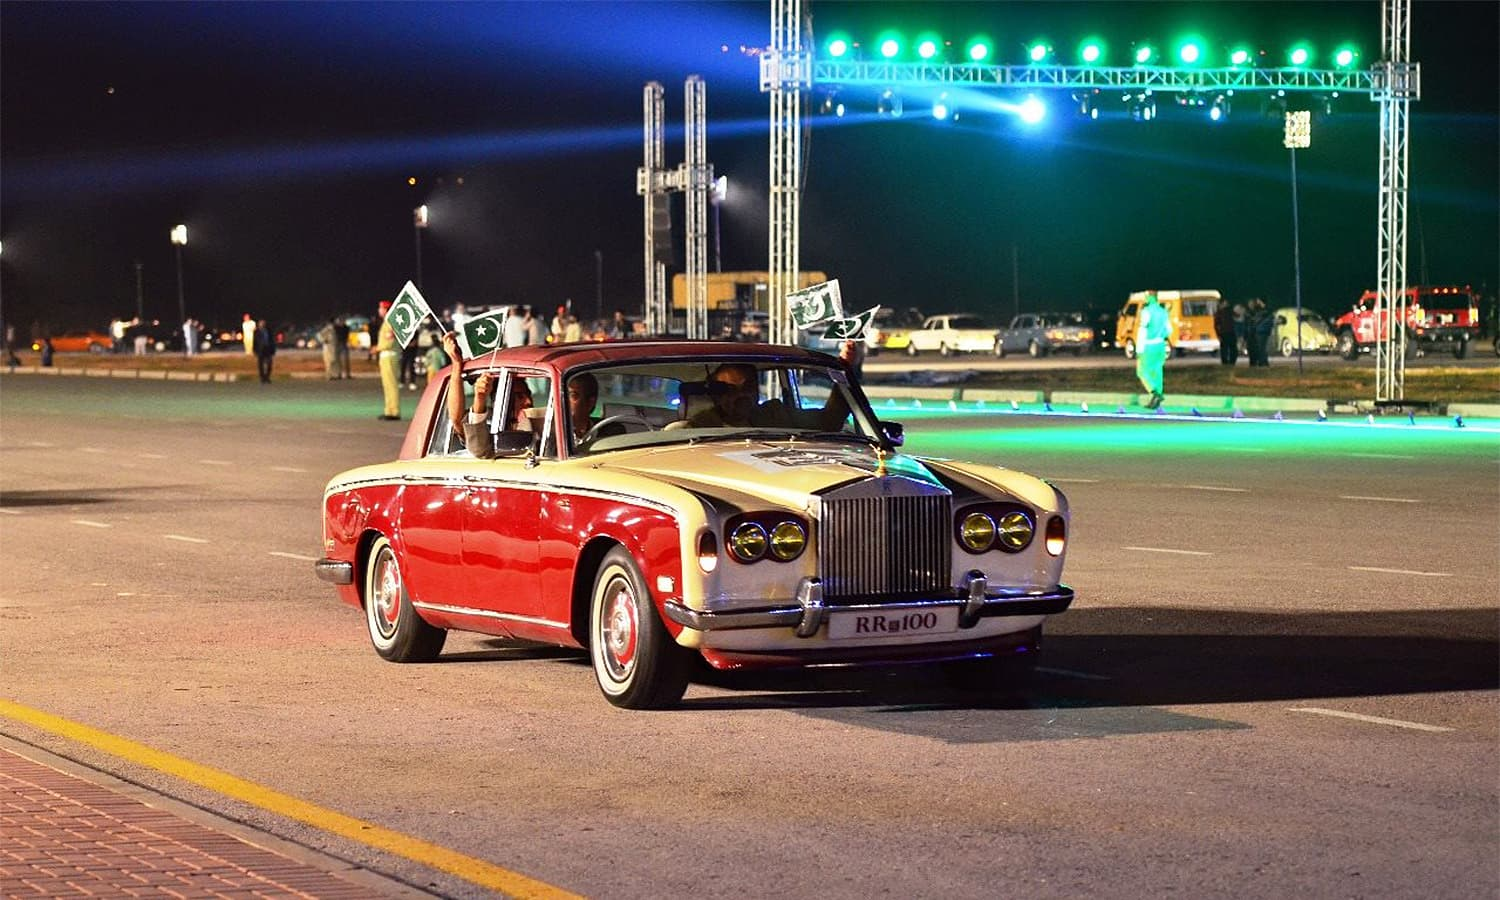 A vintage Rolls Royce is seen during the rally.— Photo: ISPR